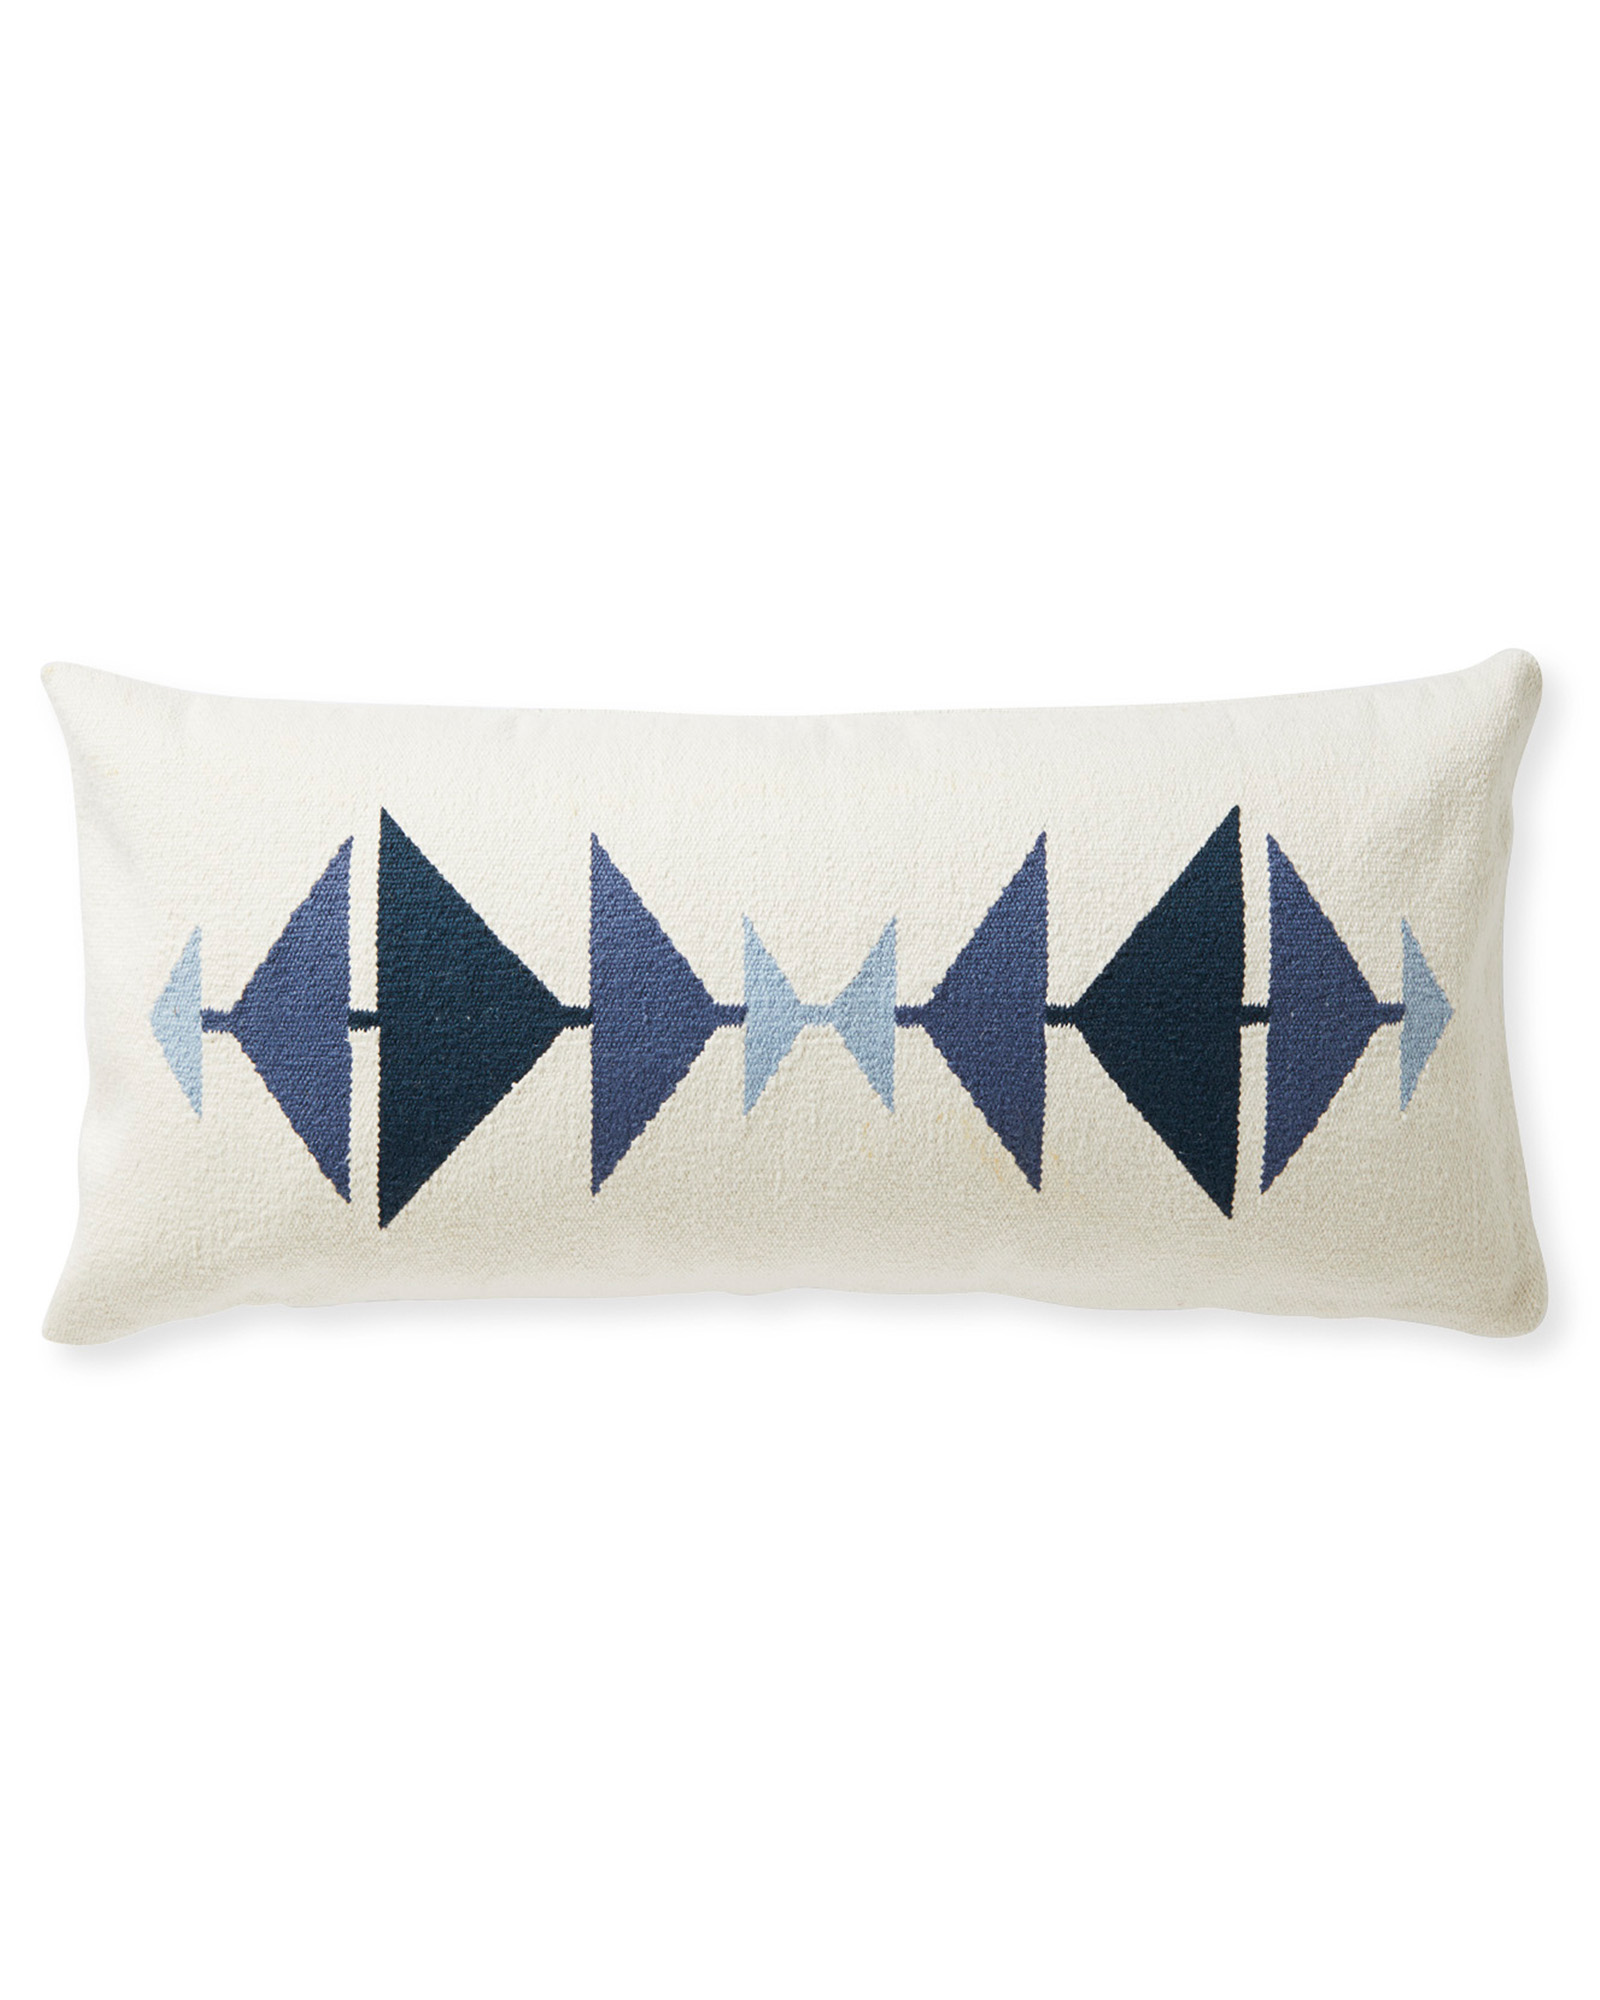 Chesapeake Pillow Cover, Blue